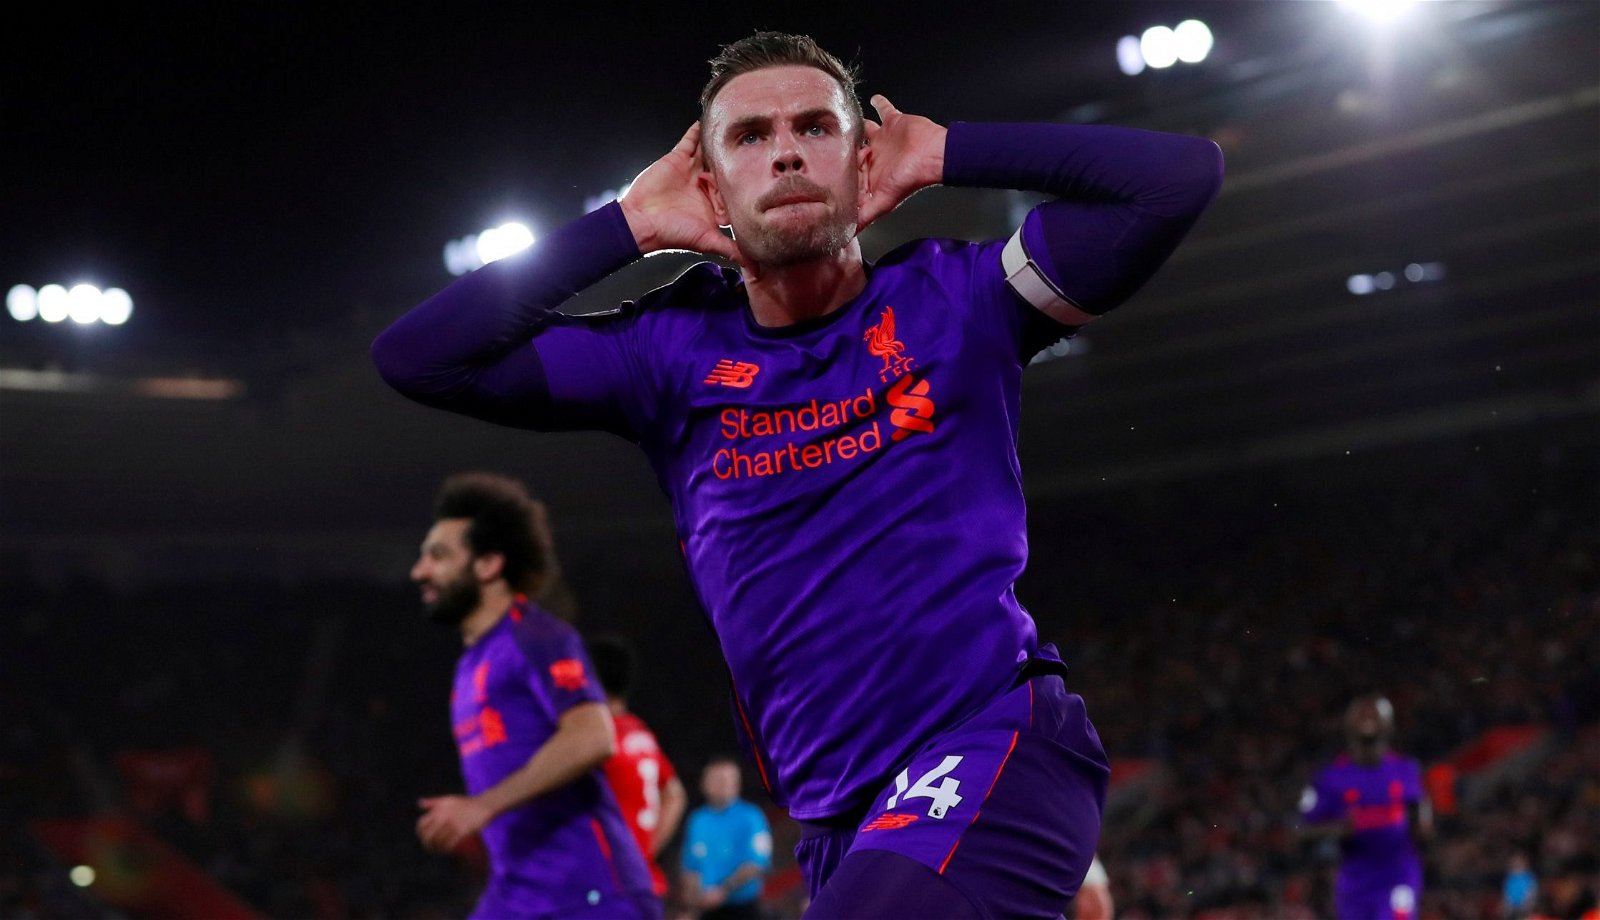 Jordan Henderson celebrates scoring for Liverpool